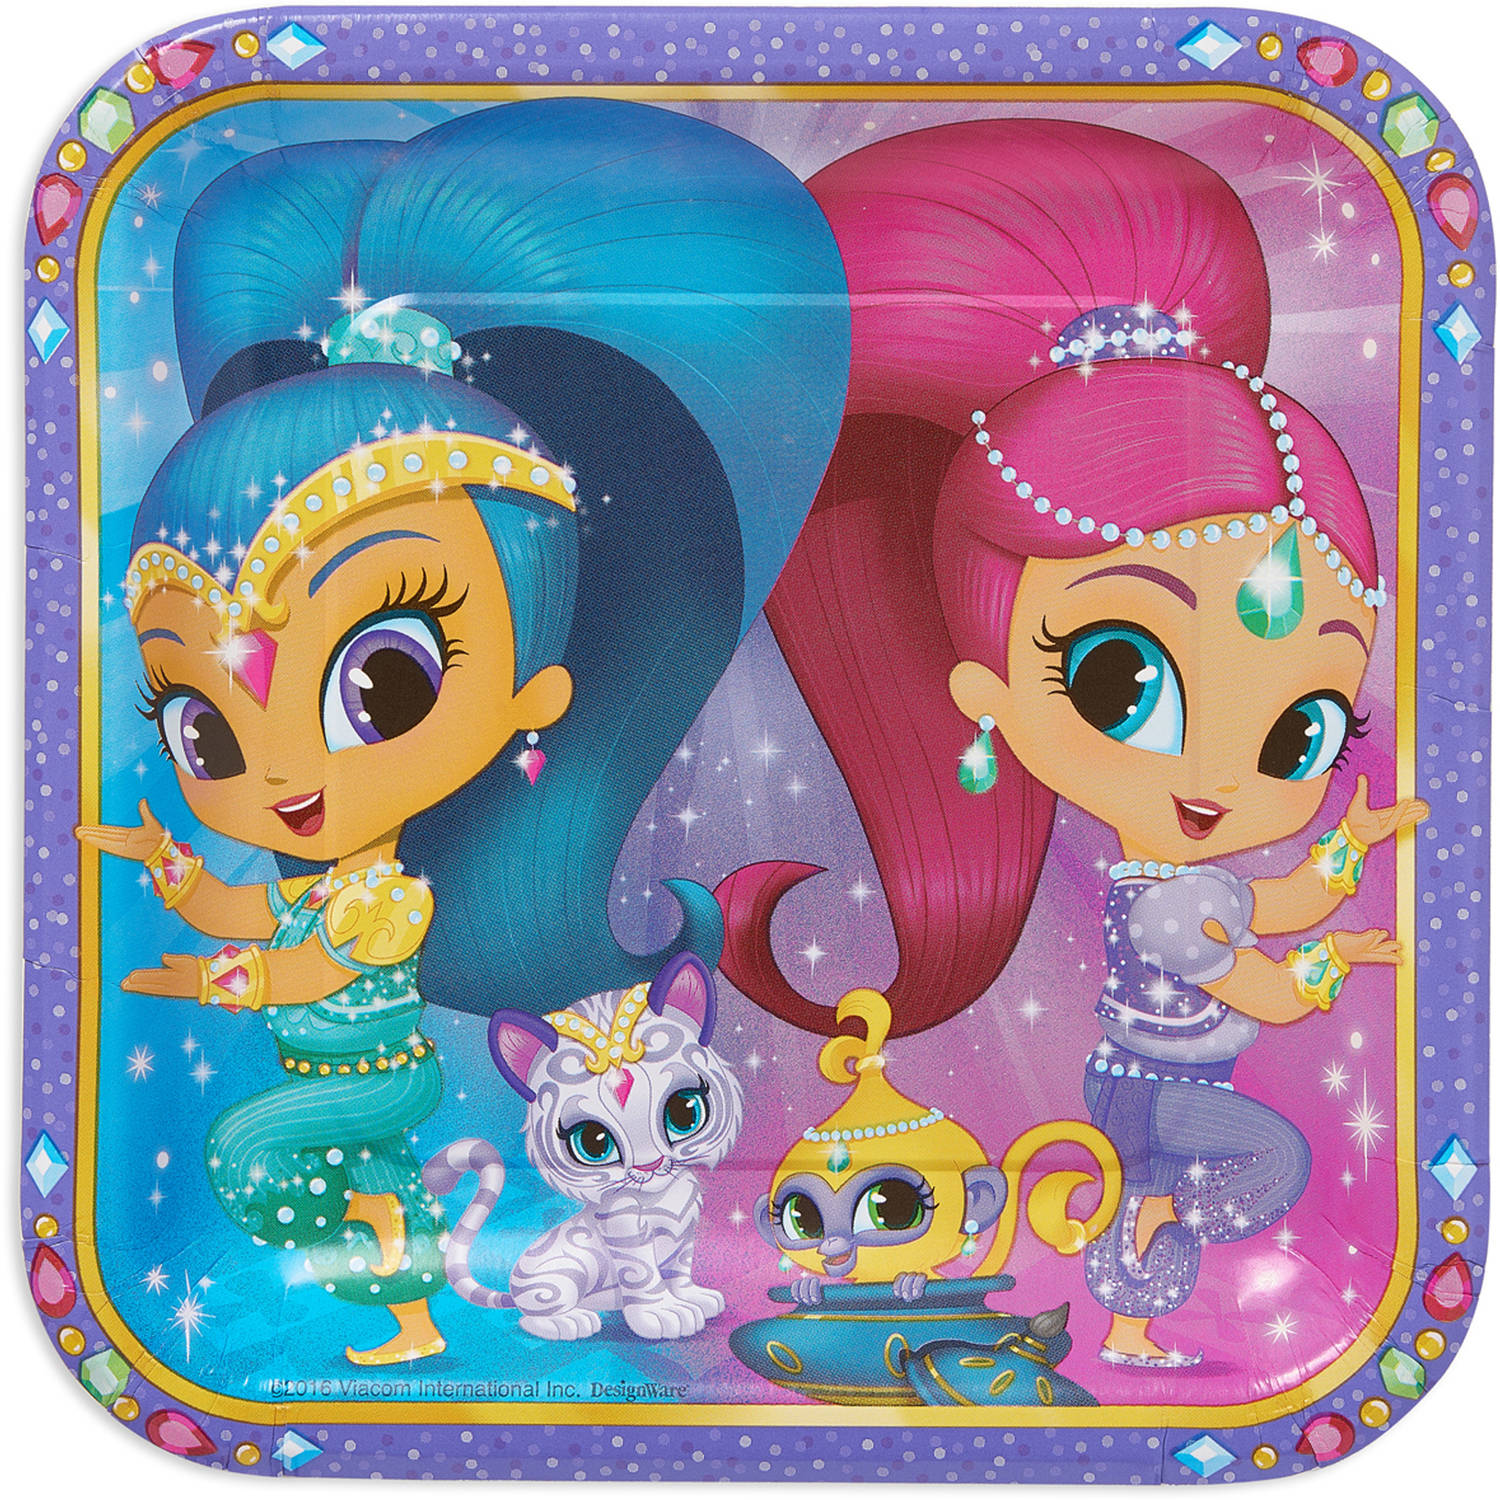 Shimmer and Shine Party Paper Square Plate, 9 in, 8ct by American Greetings